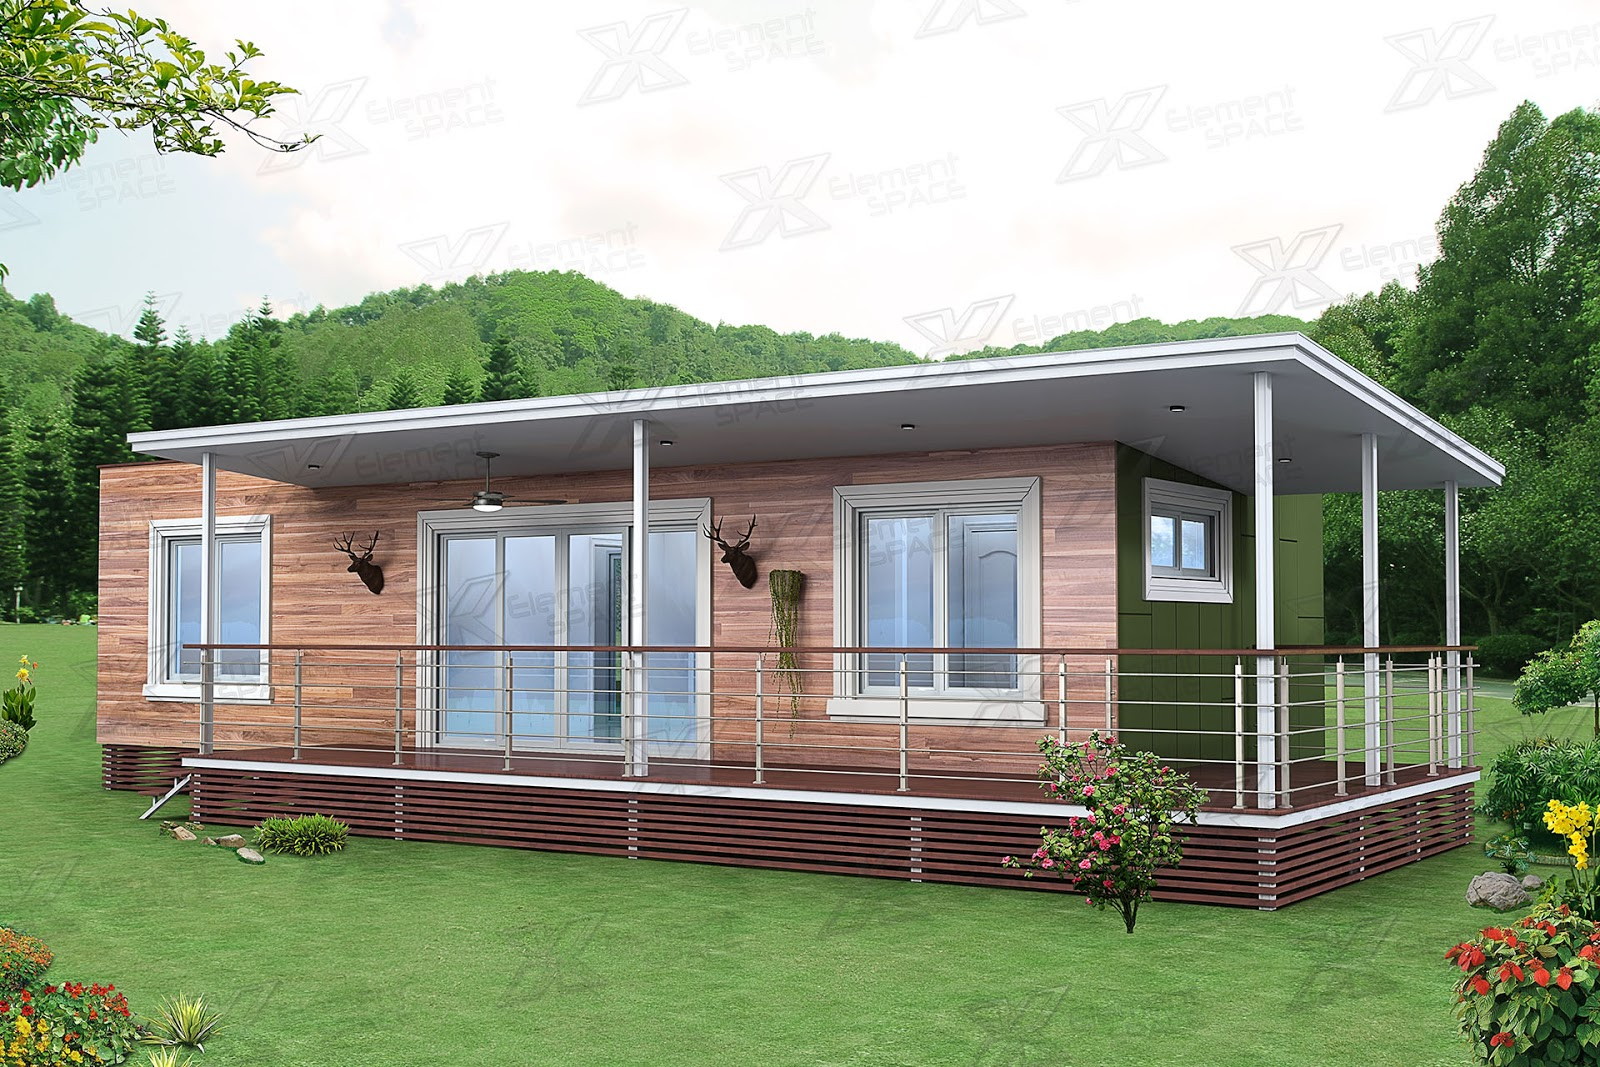 Shipping container house plans modular homes idea container cafe container restaurant - Building shipping container homes ...